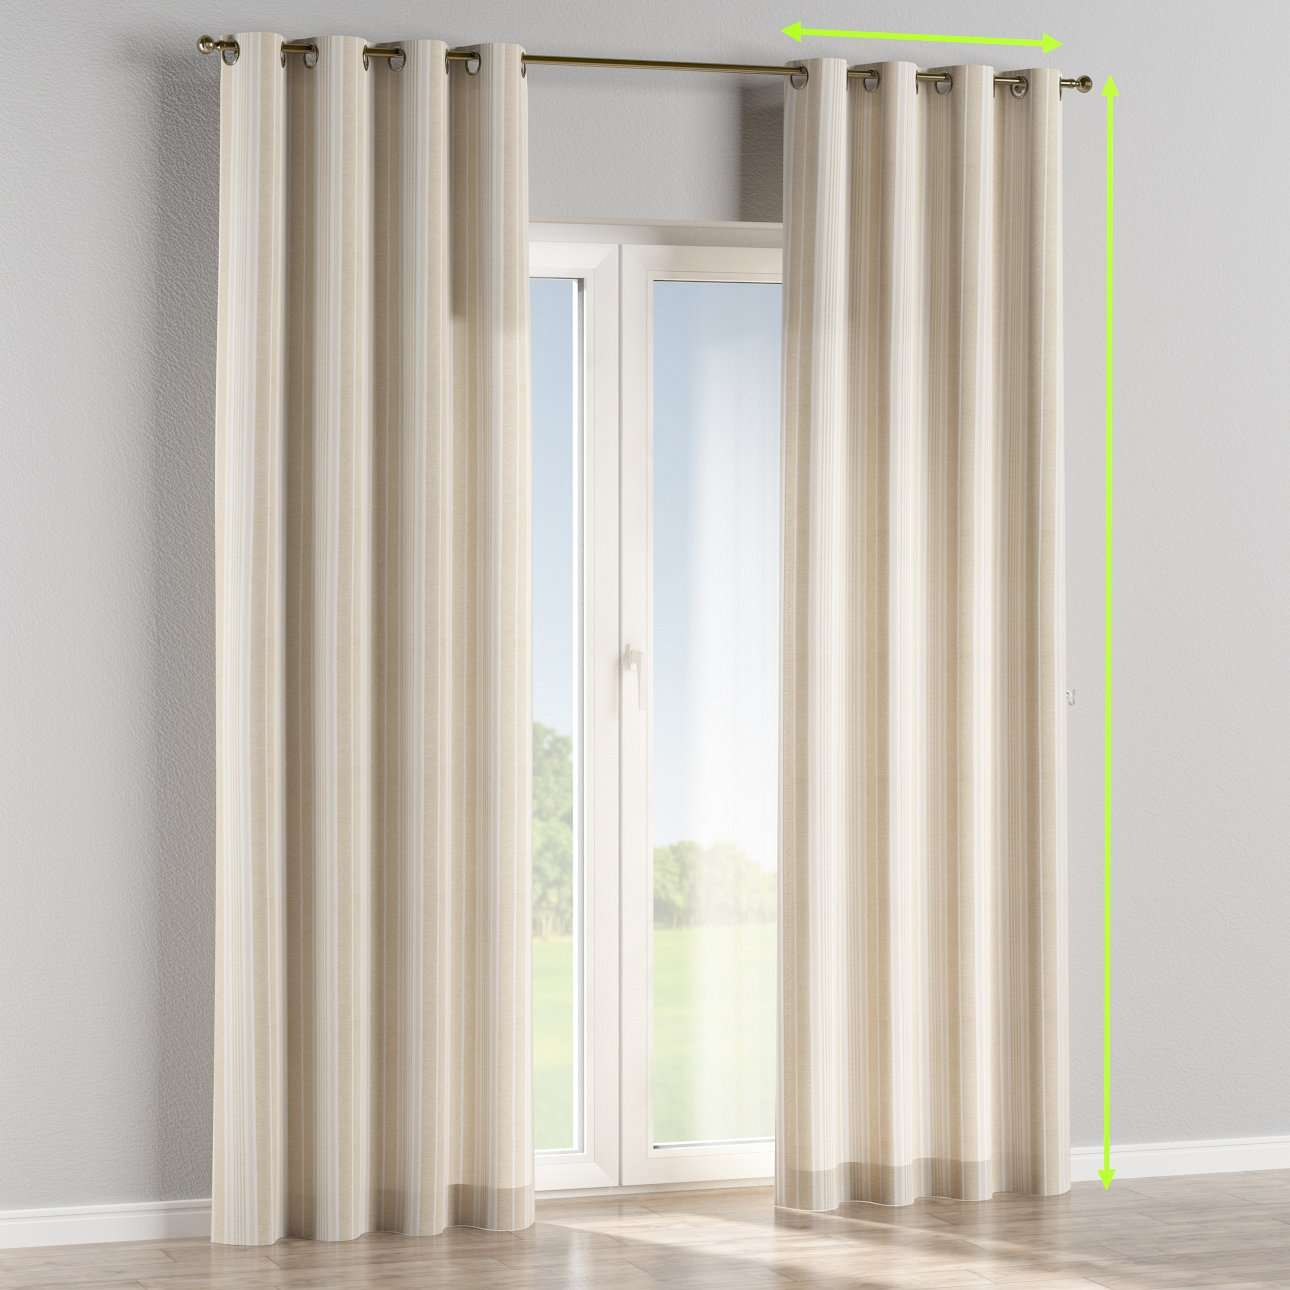 Eyelet lined curtains in collection Rustica, fabric: 138-24